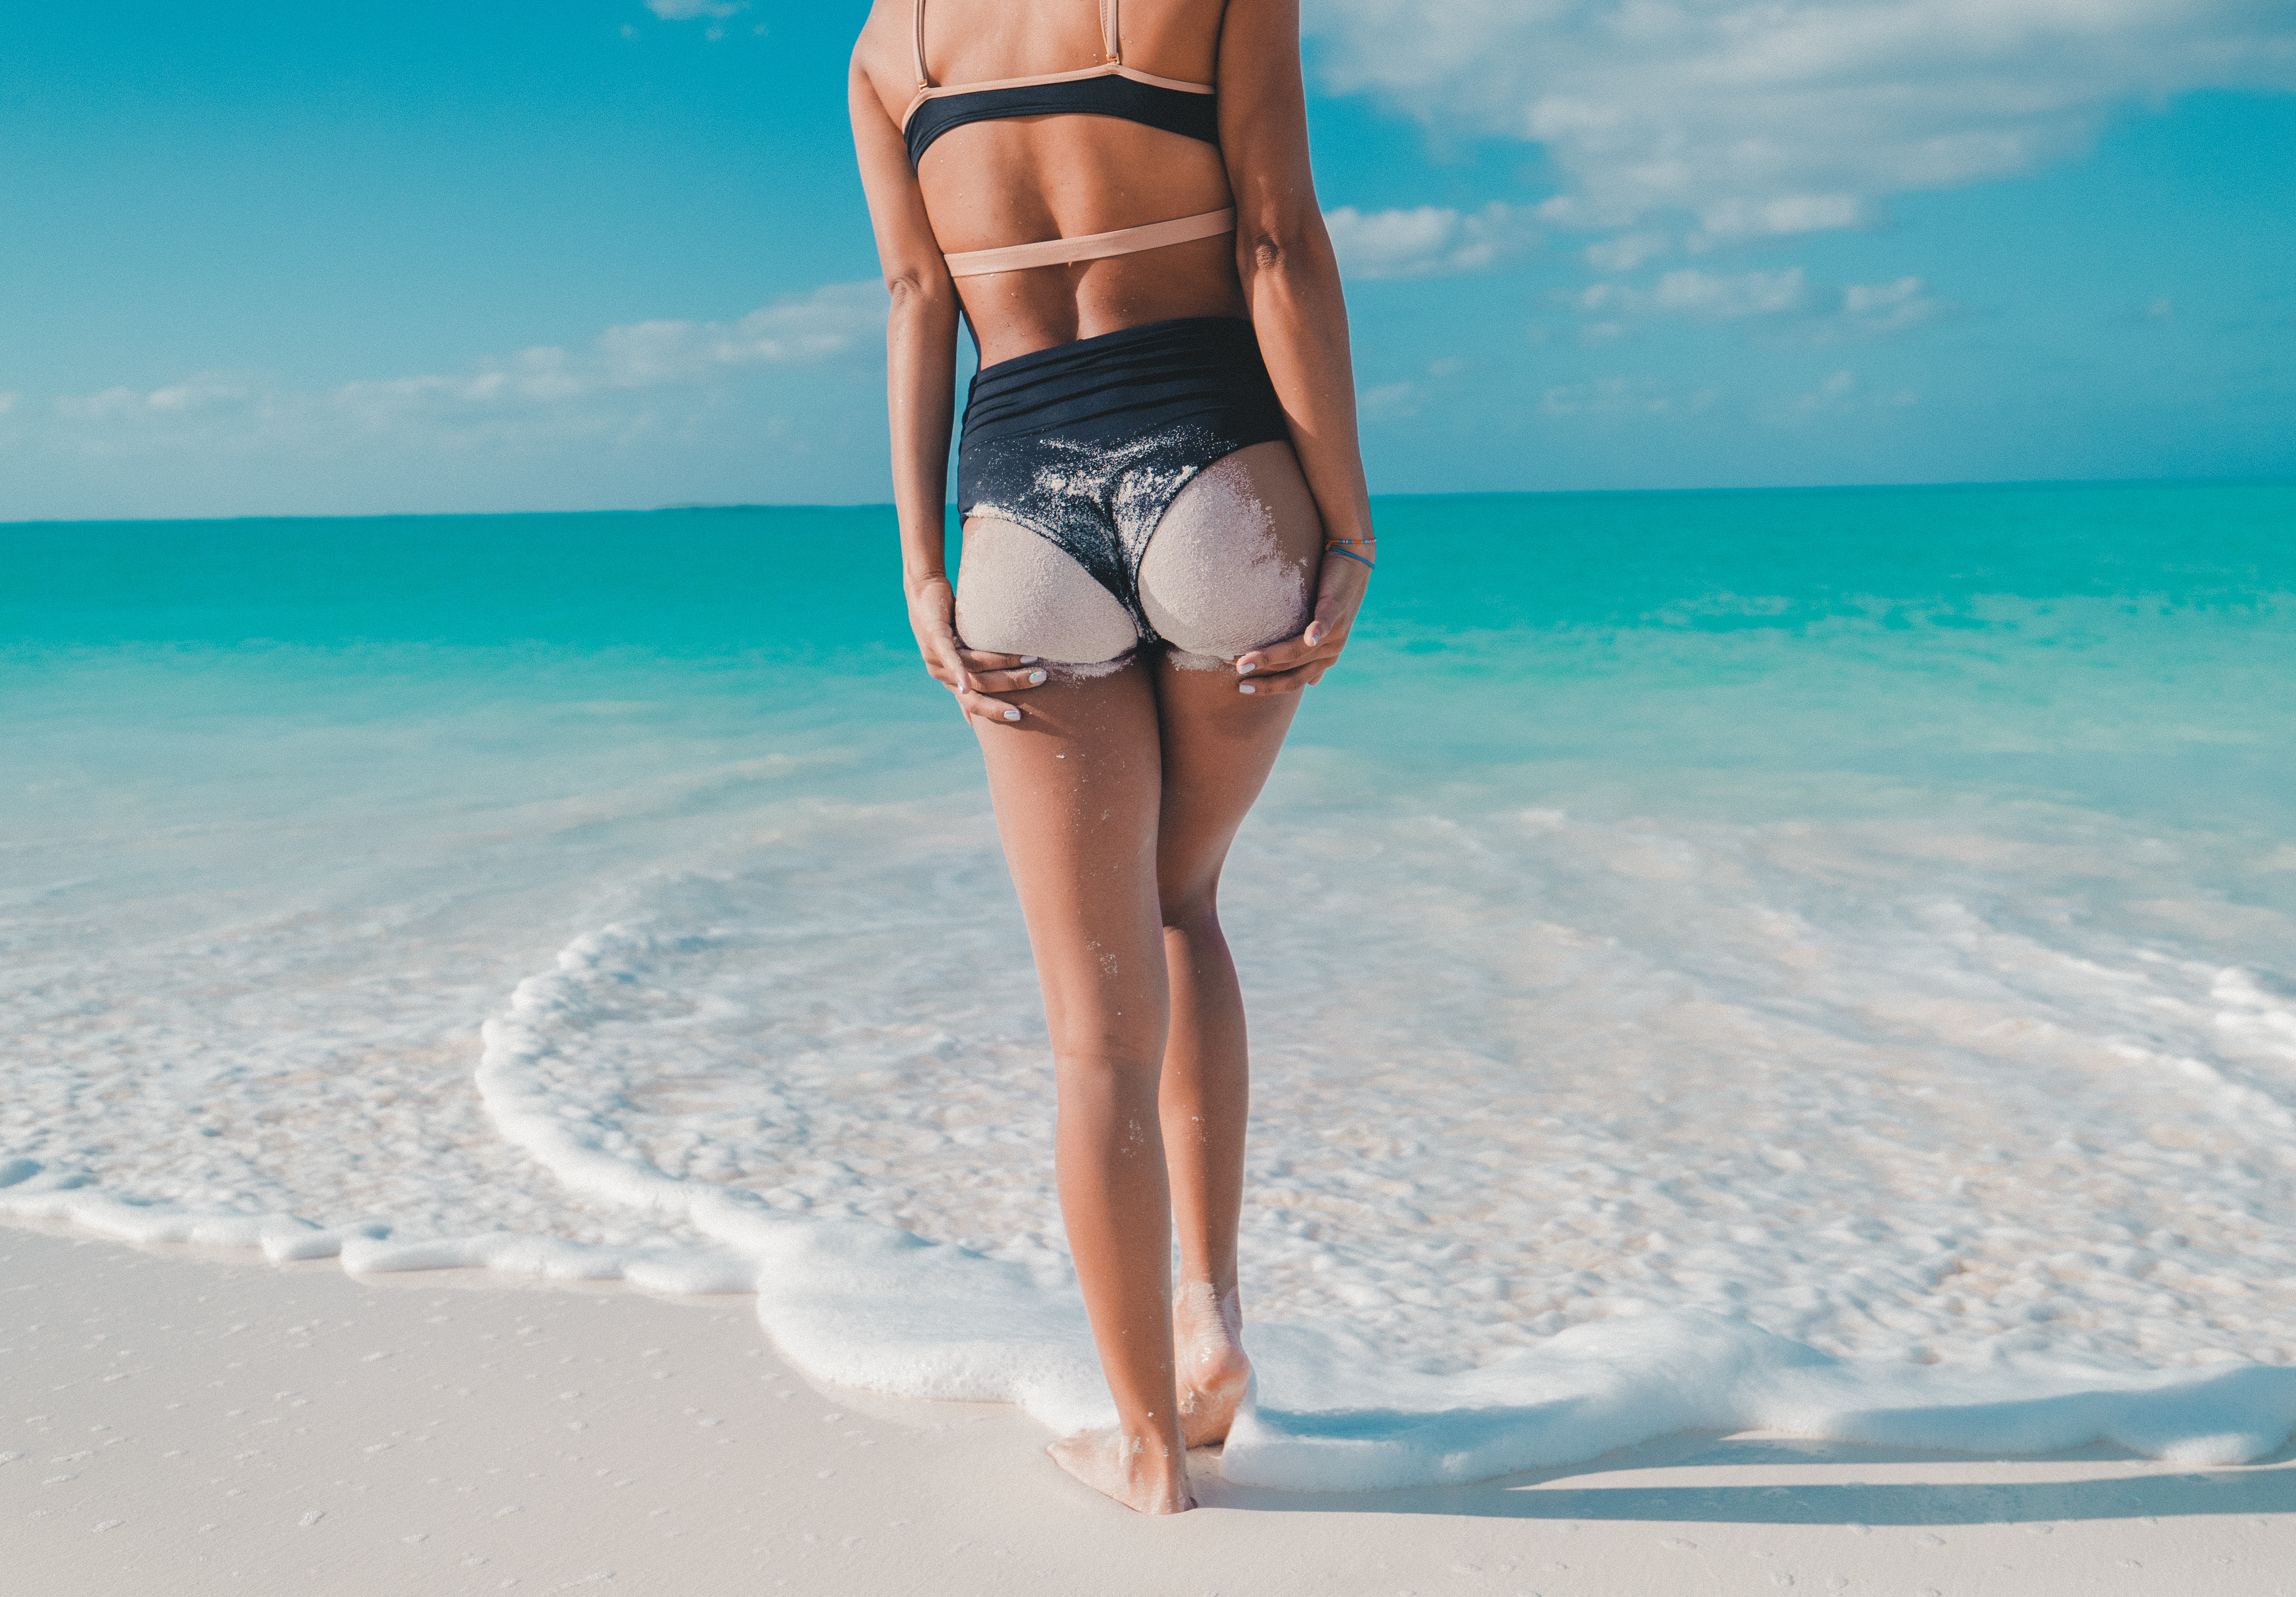 Fitness: How to build beautiful buttocks